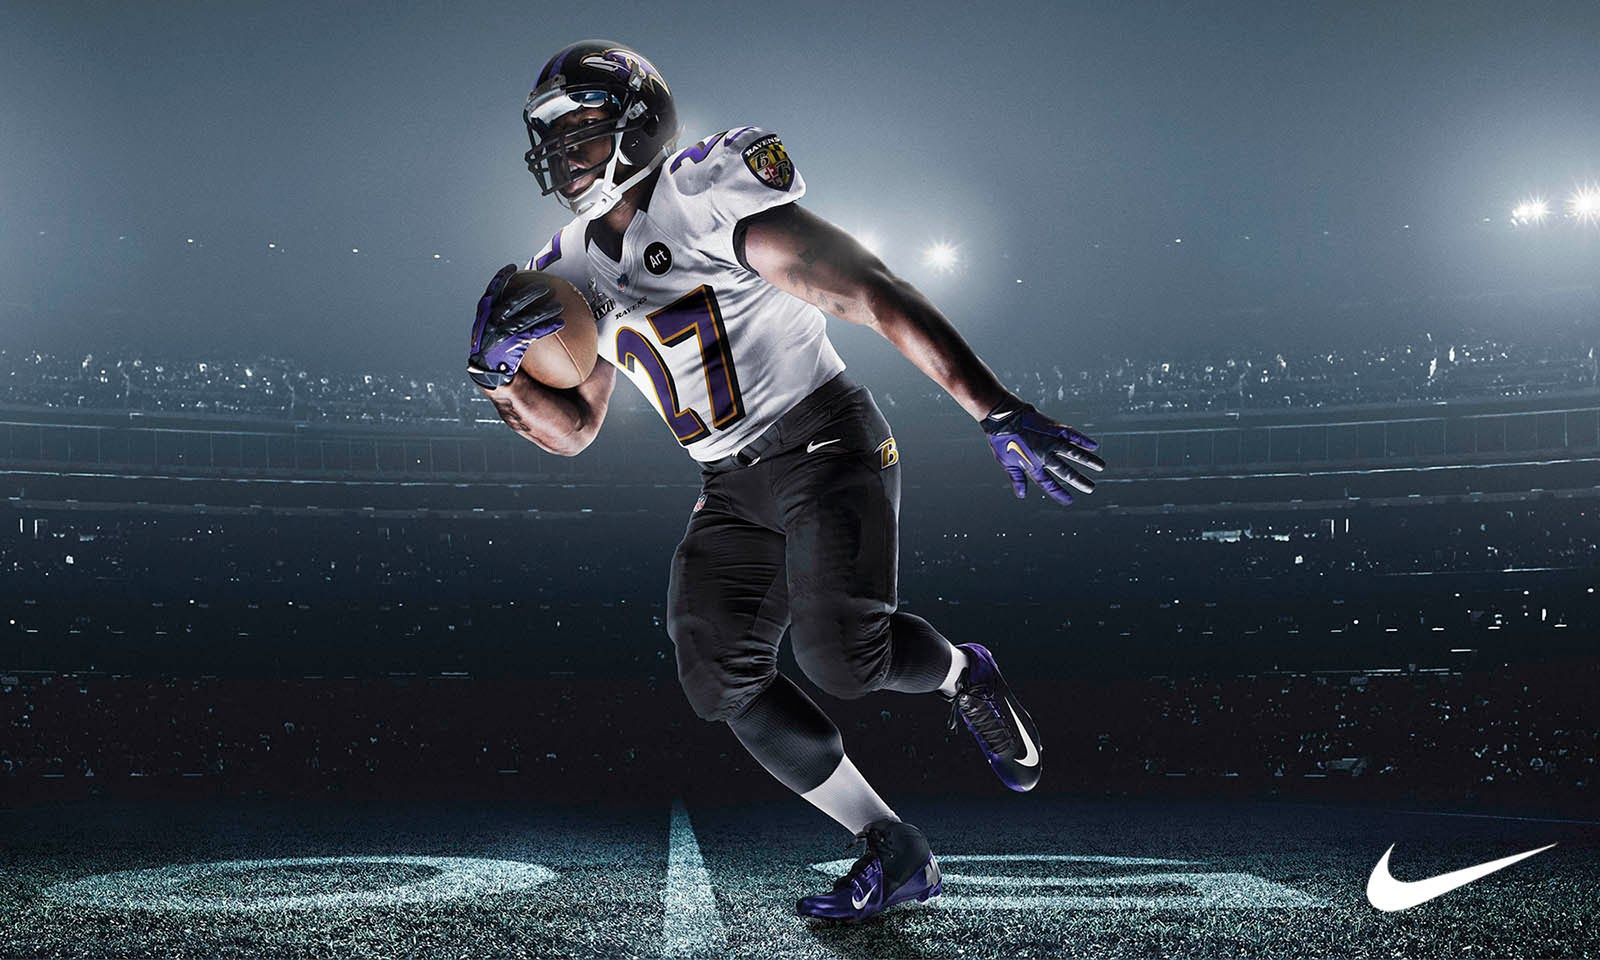 Nfl Football Players Wallpapers Nfl player ray rice hd 1600x960